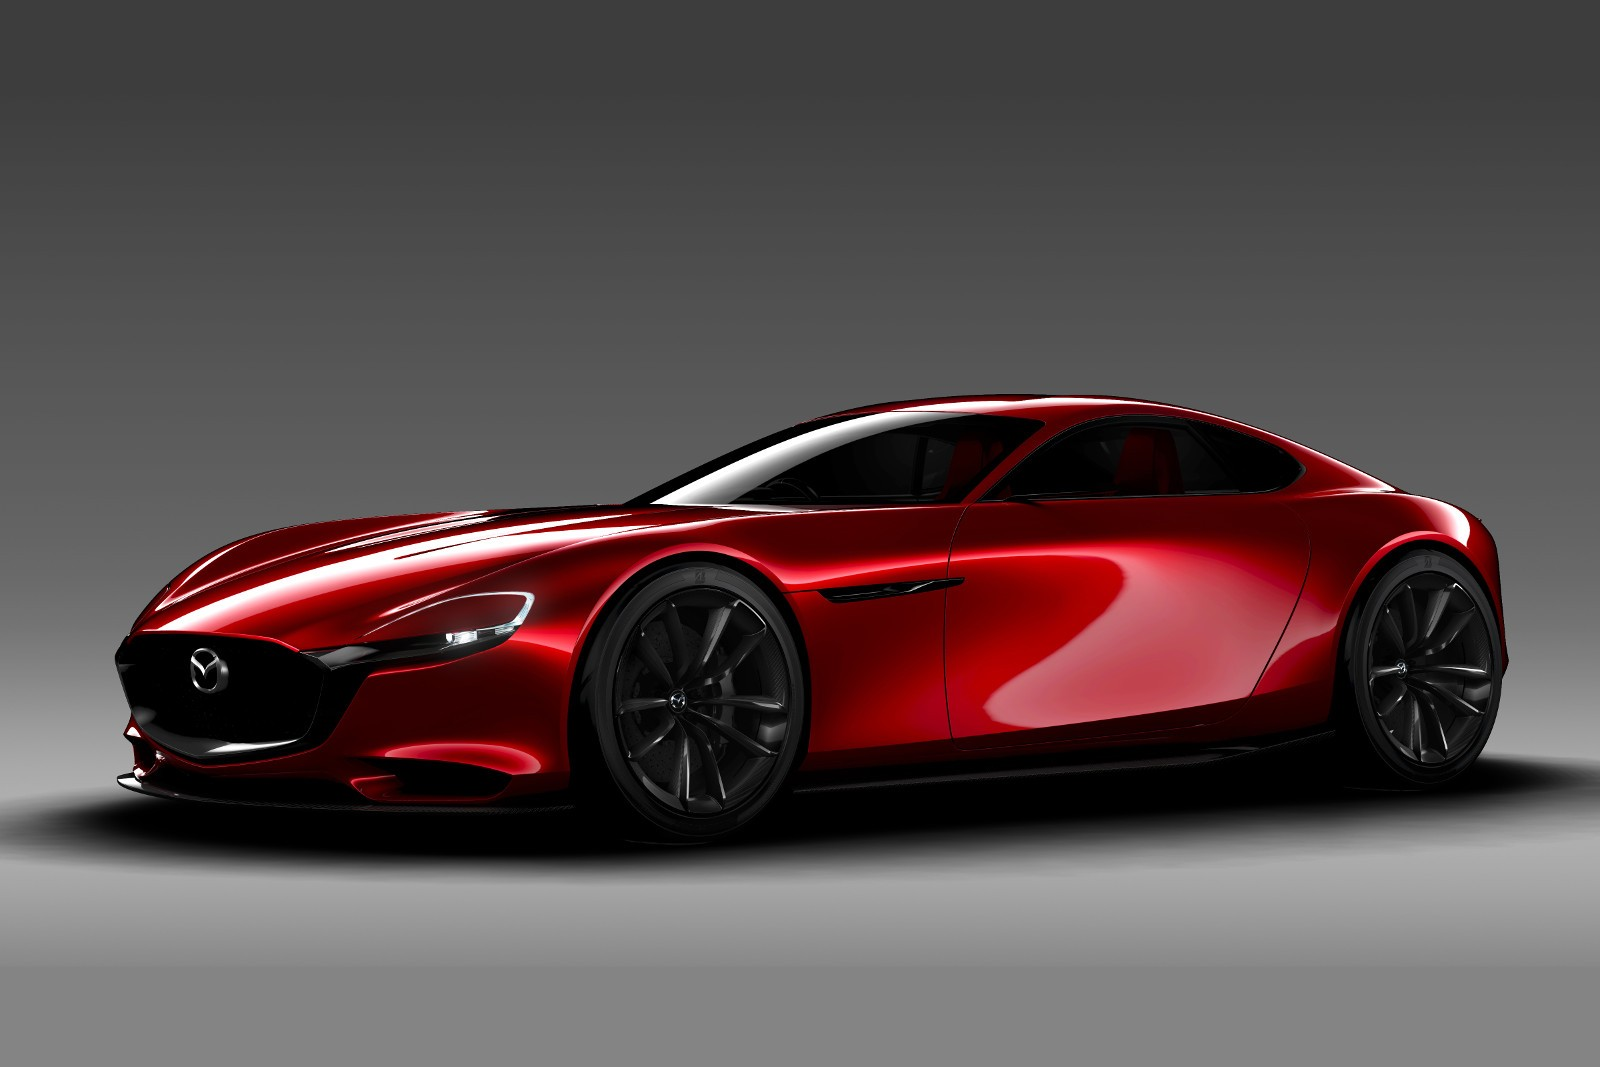 new mazda rotary sports car concept coming to 2017 tokyo. Black Bedroom Furniture Sets. Home Design Ideas